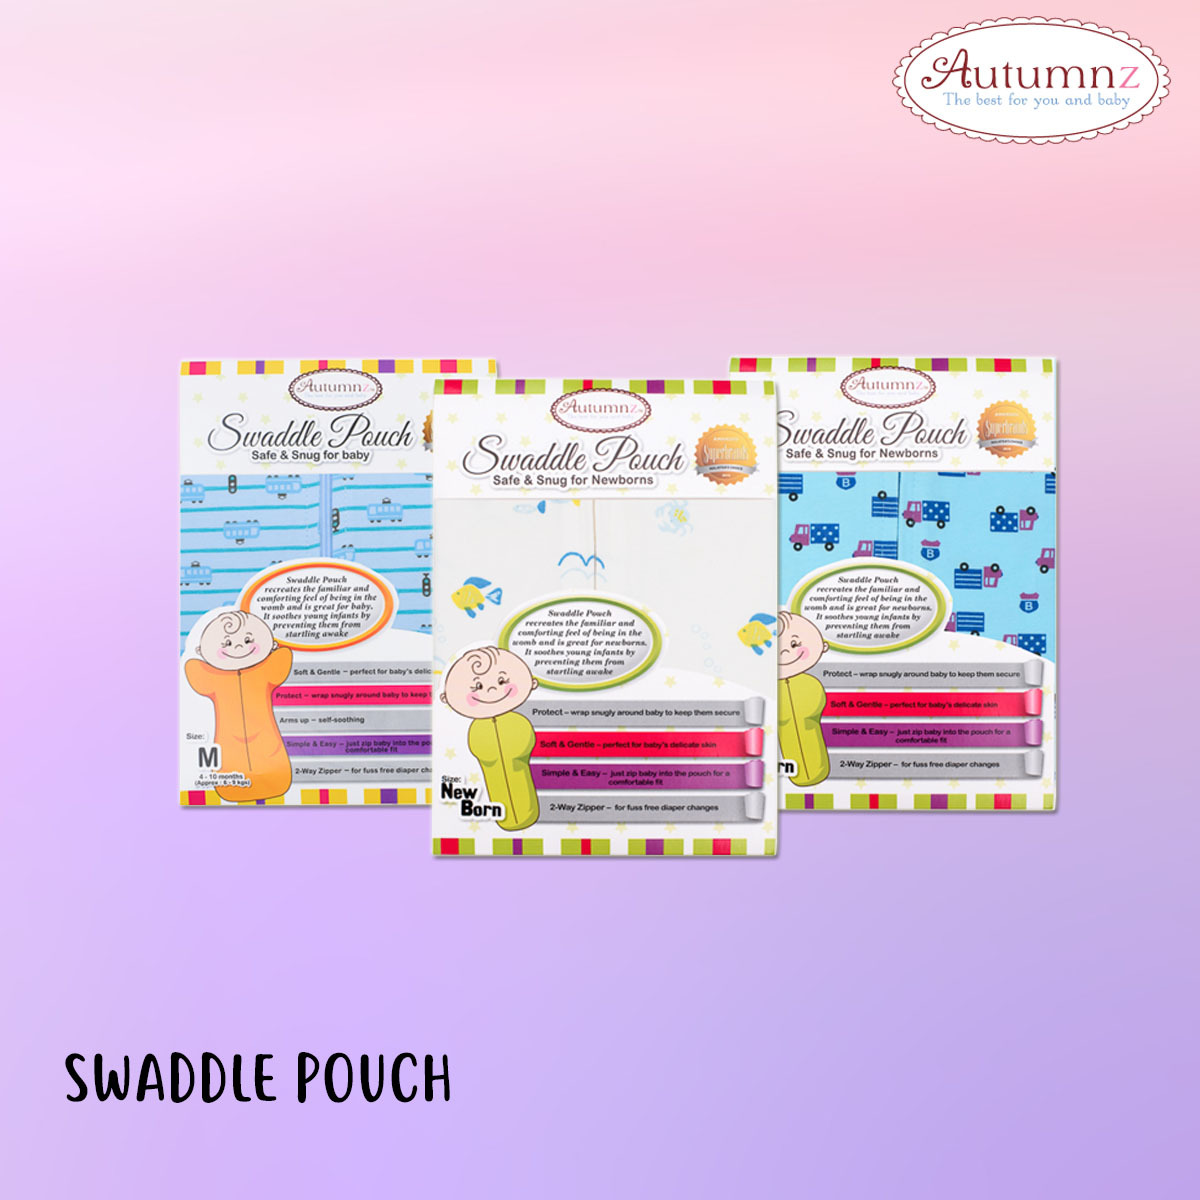 SWADDLE POUCH 1.jpg